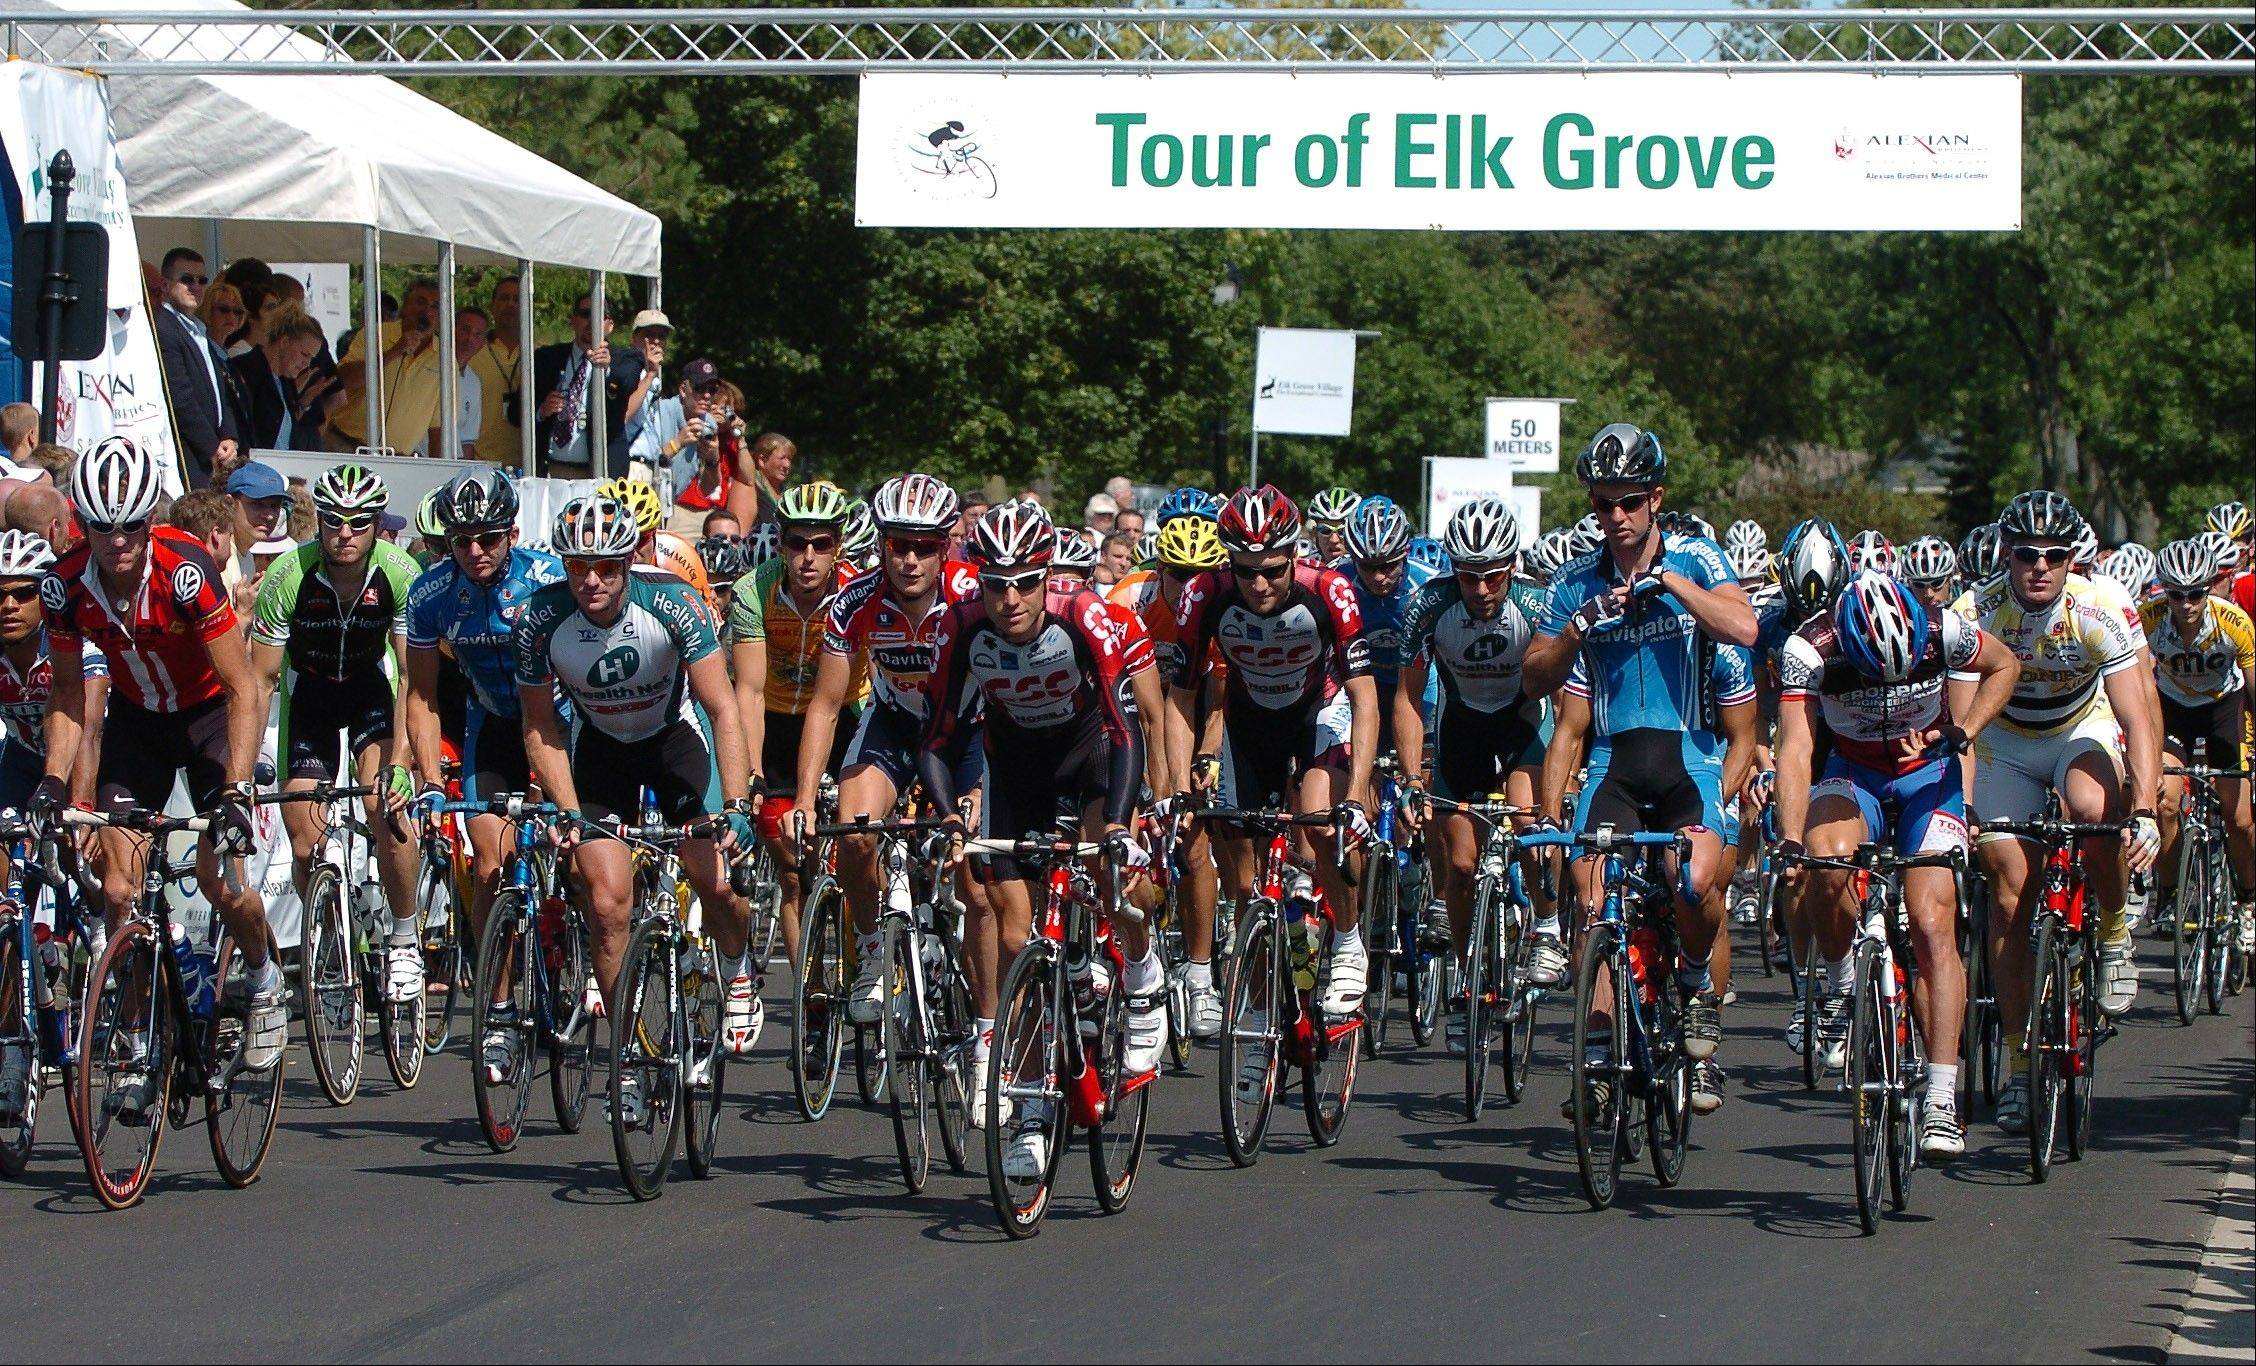 Despite Elk Grove Village's decision to cancel the Tour of Elk Grove because of a scheduling conflict with another top cycling event, an official at USA Cycling said Monday the organization believes the two events can coexist and both attract elite-level riders.